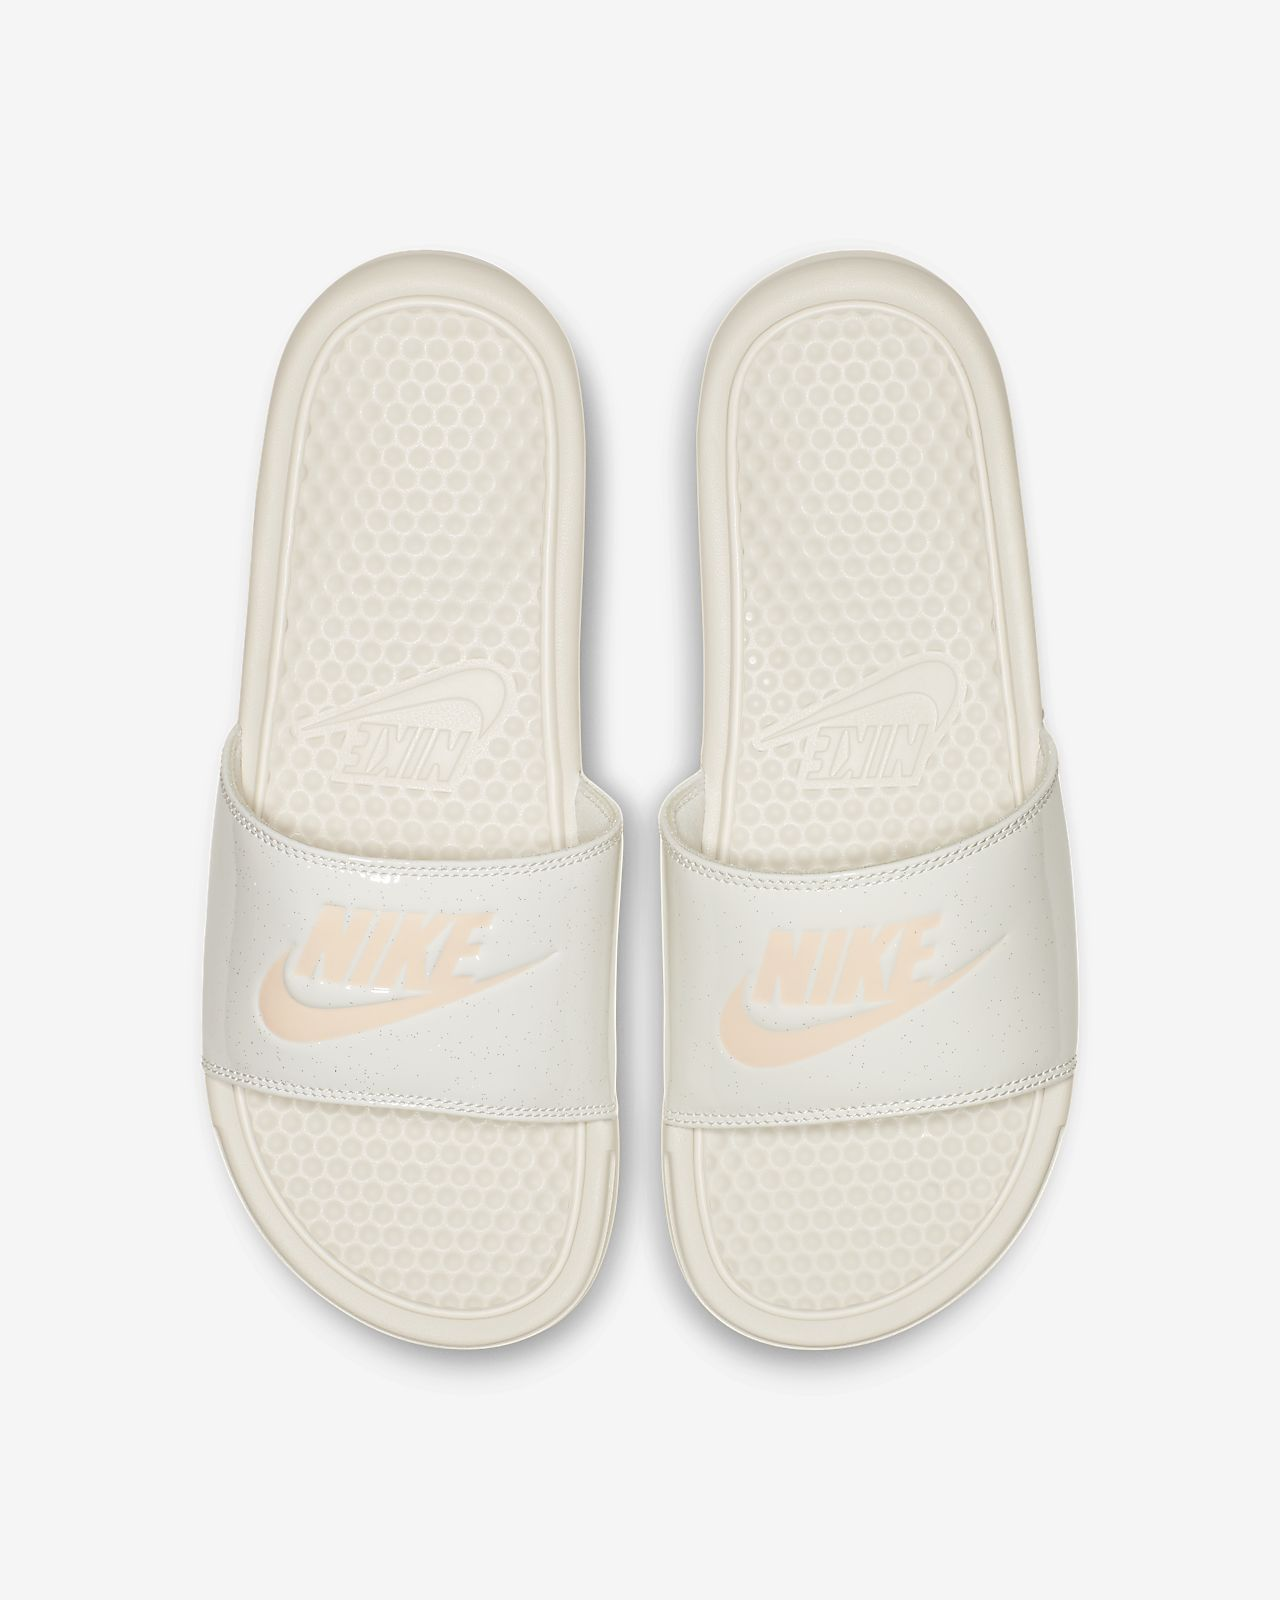 huge selection of 70995 52ad6 Women s Slide. Nike Benassi JDI Sheen